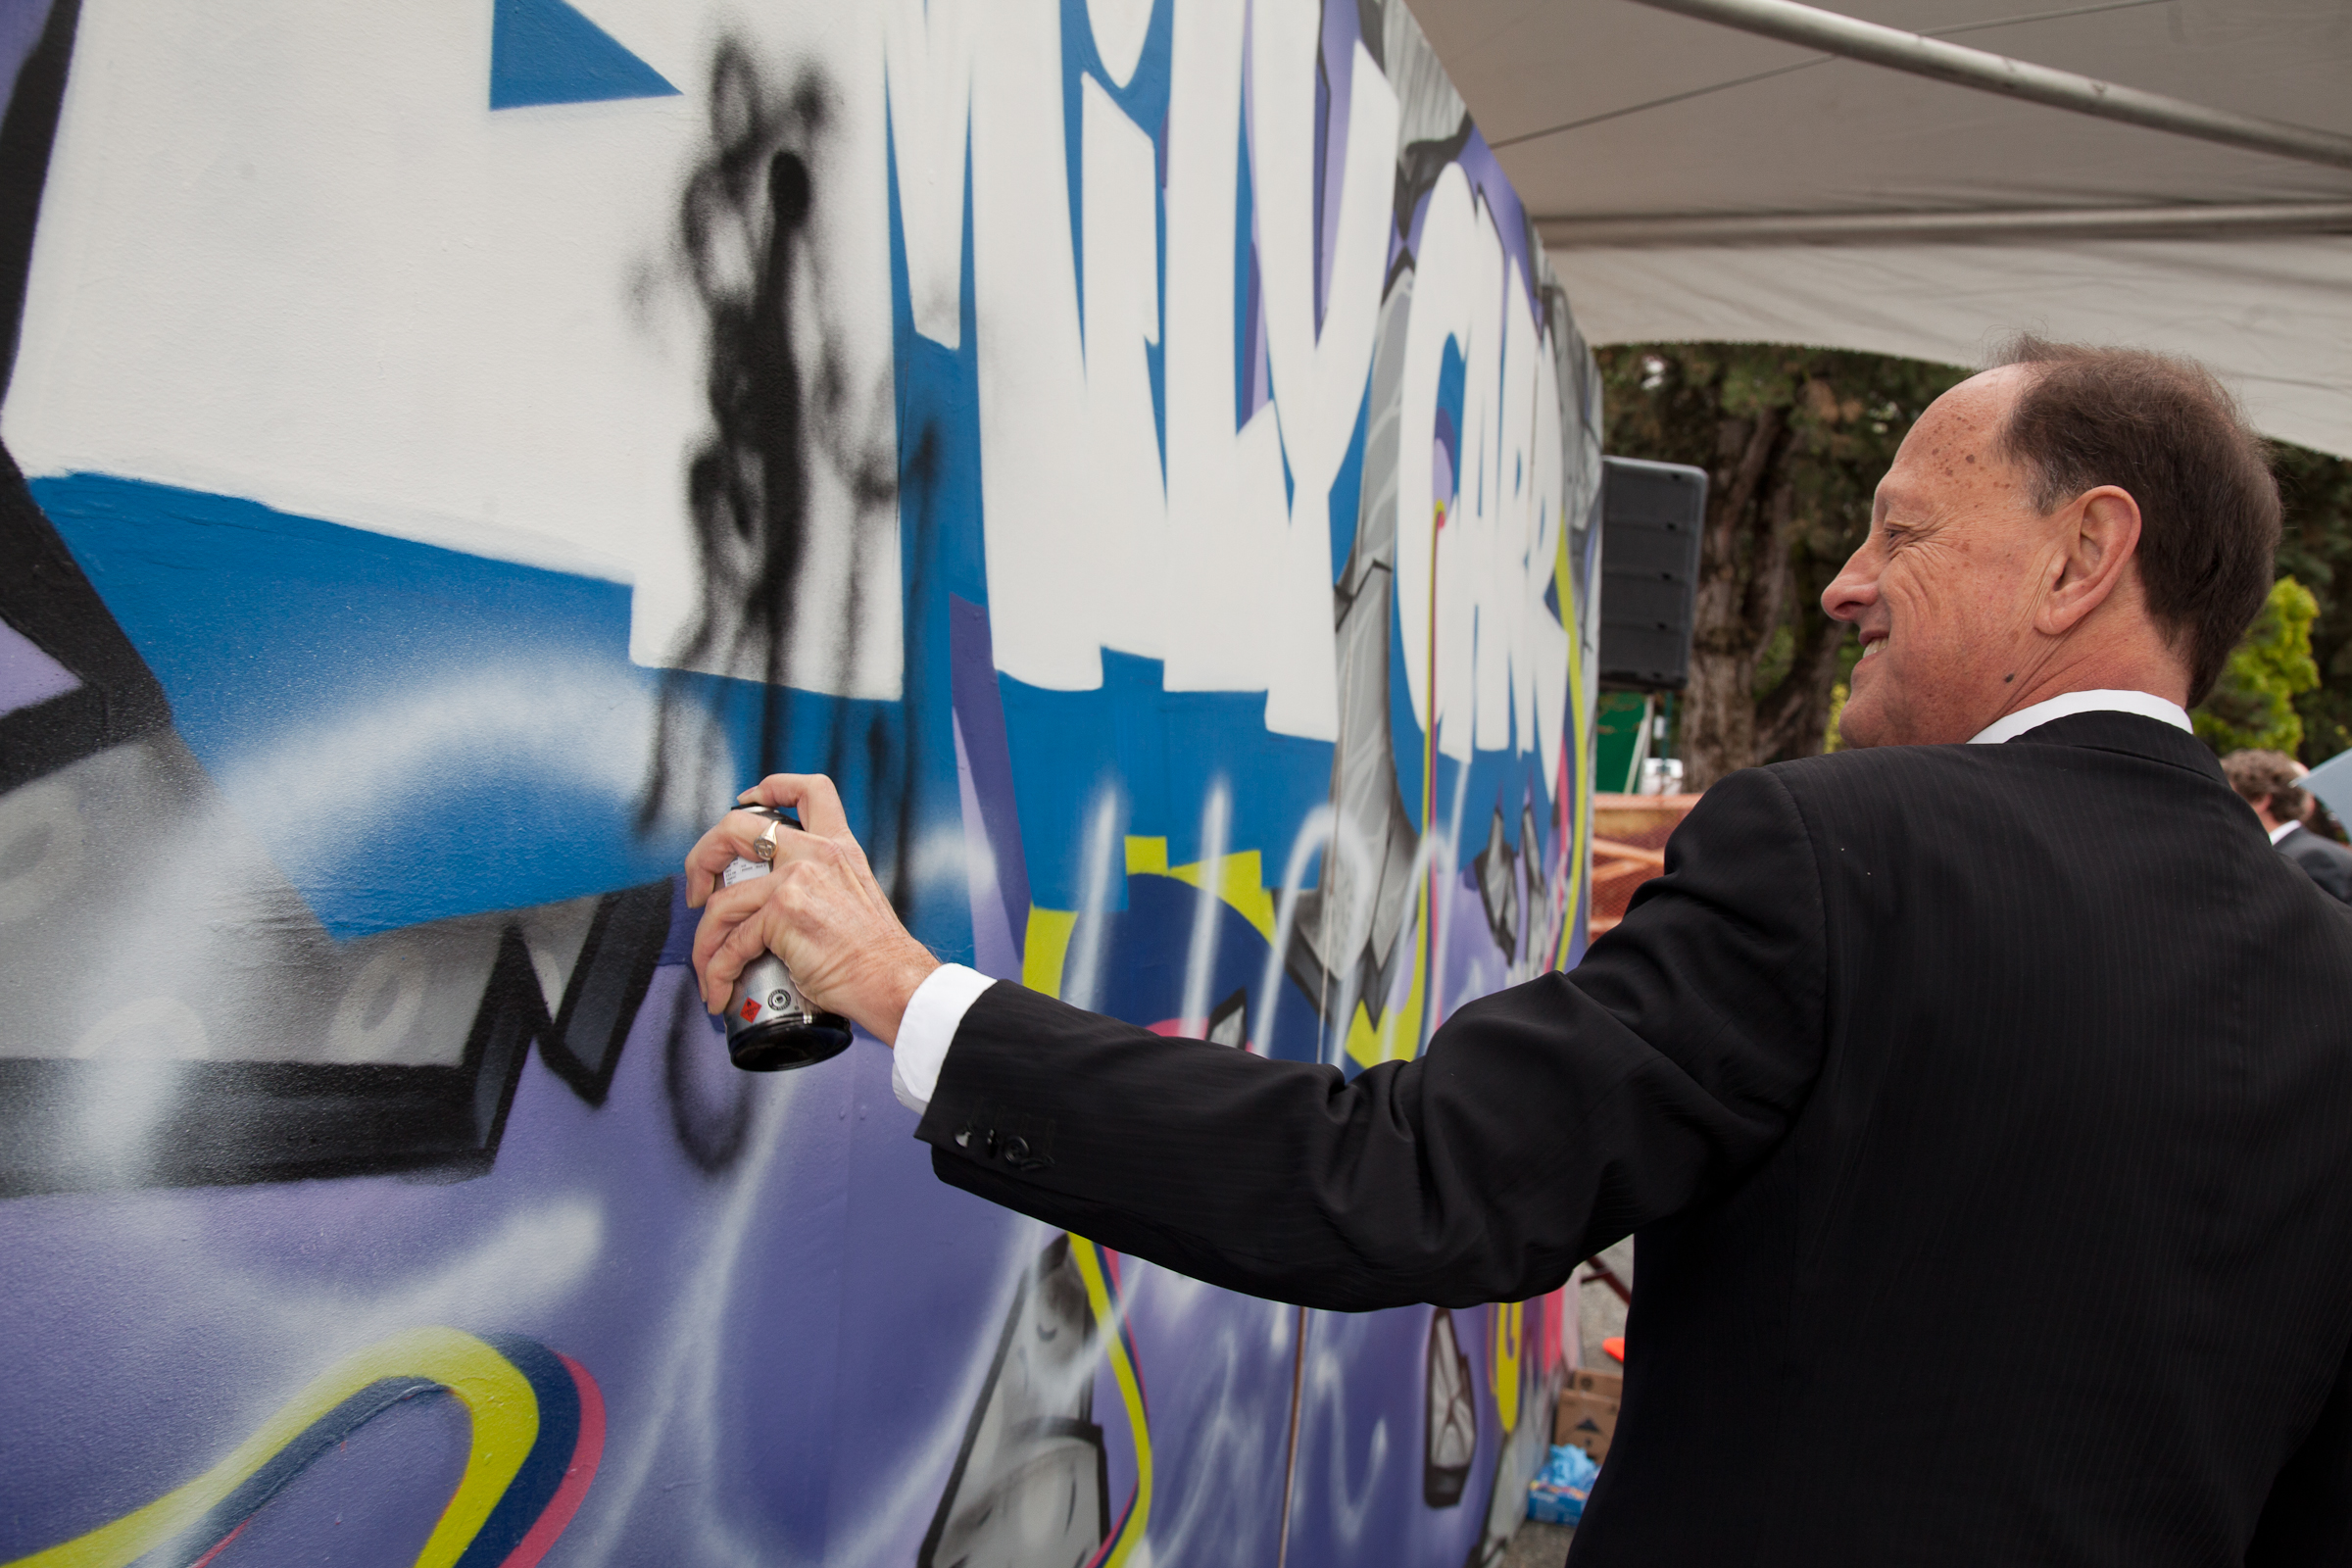 Dr. Ron Burnett tags the graffiti wall at Emily Carr University's groundbreaking ceremony